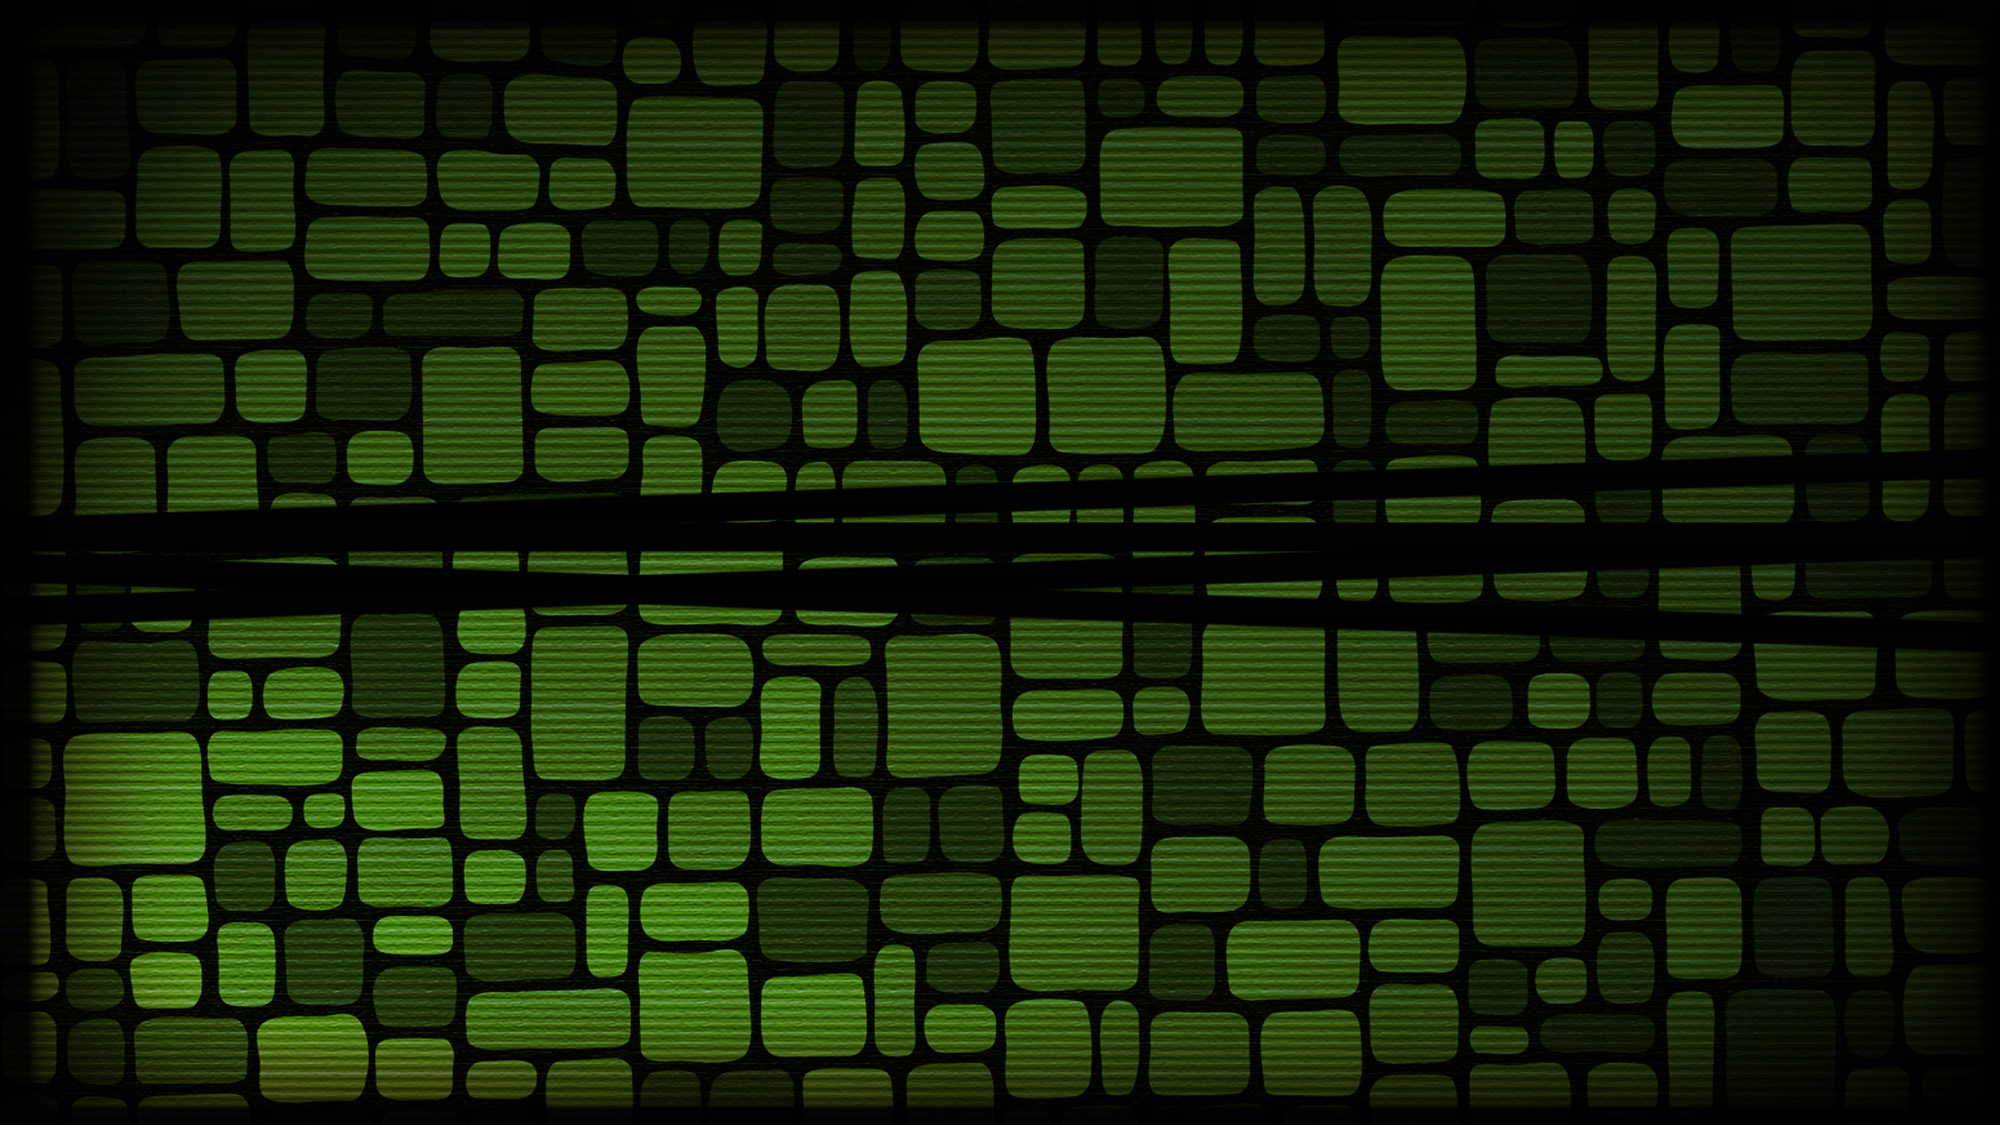 Mosaic_wide_T_nt